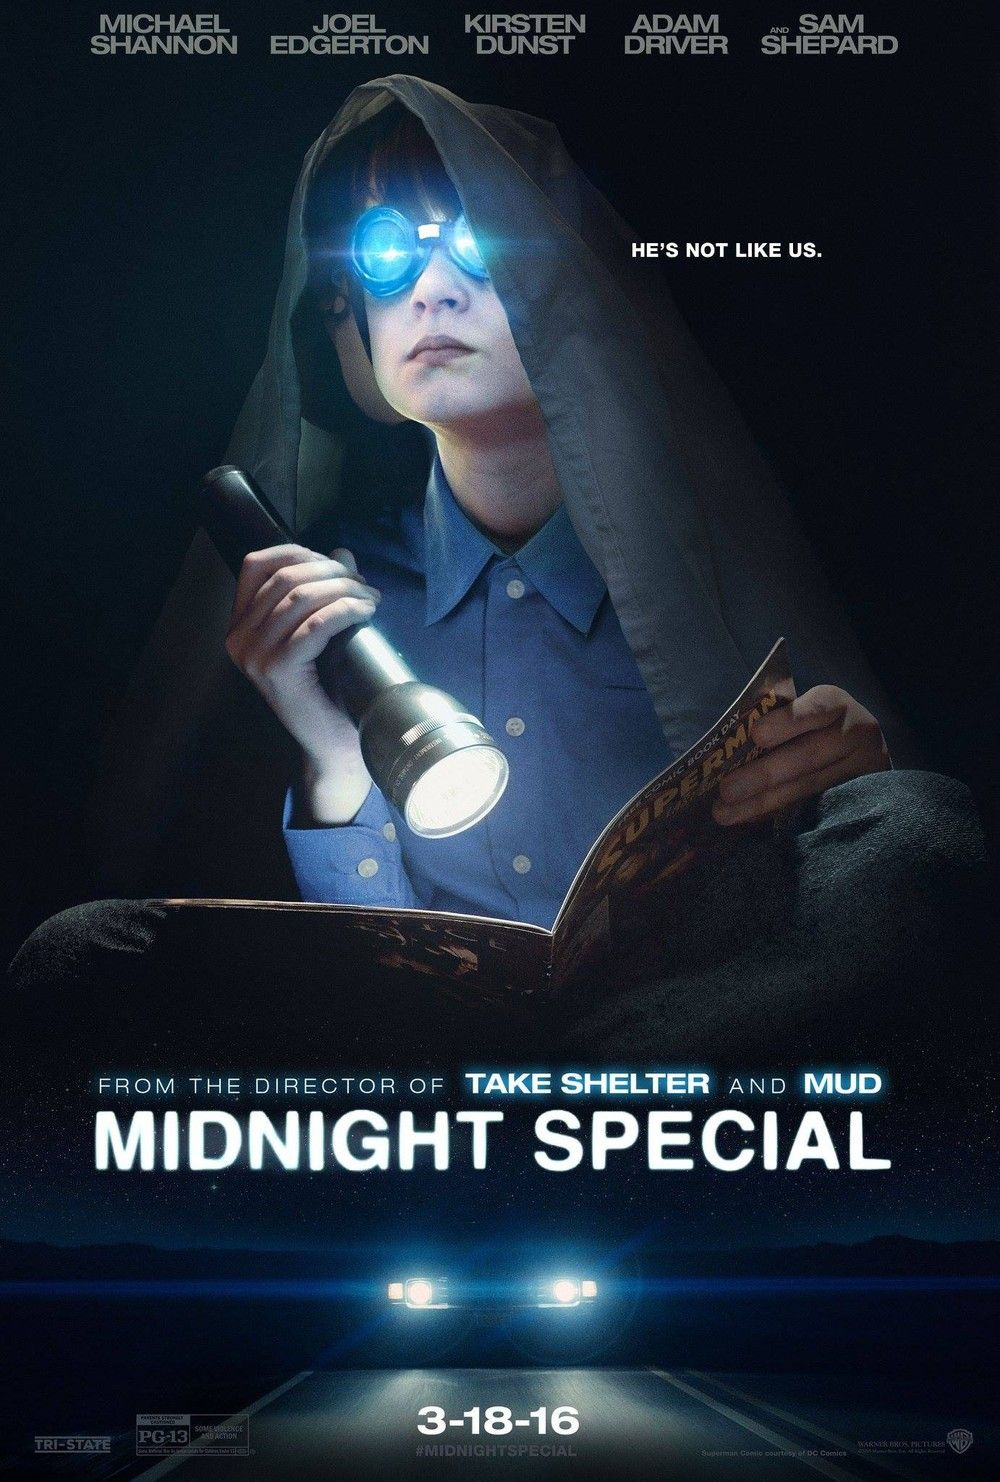 Midnight Special Dvd Release Date Redbox Netflix Itunes Amazon Full Movies Free The Midnight Special Free Movies Online